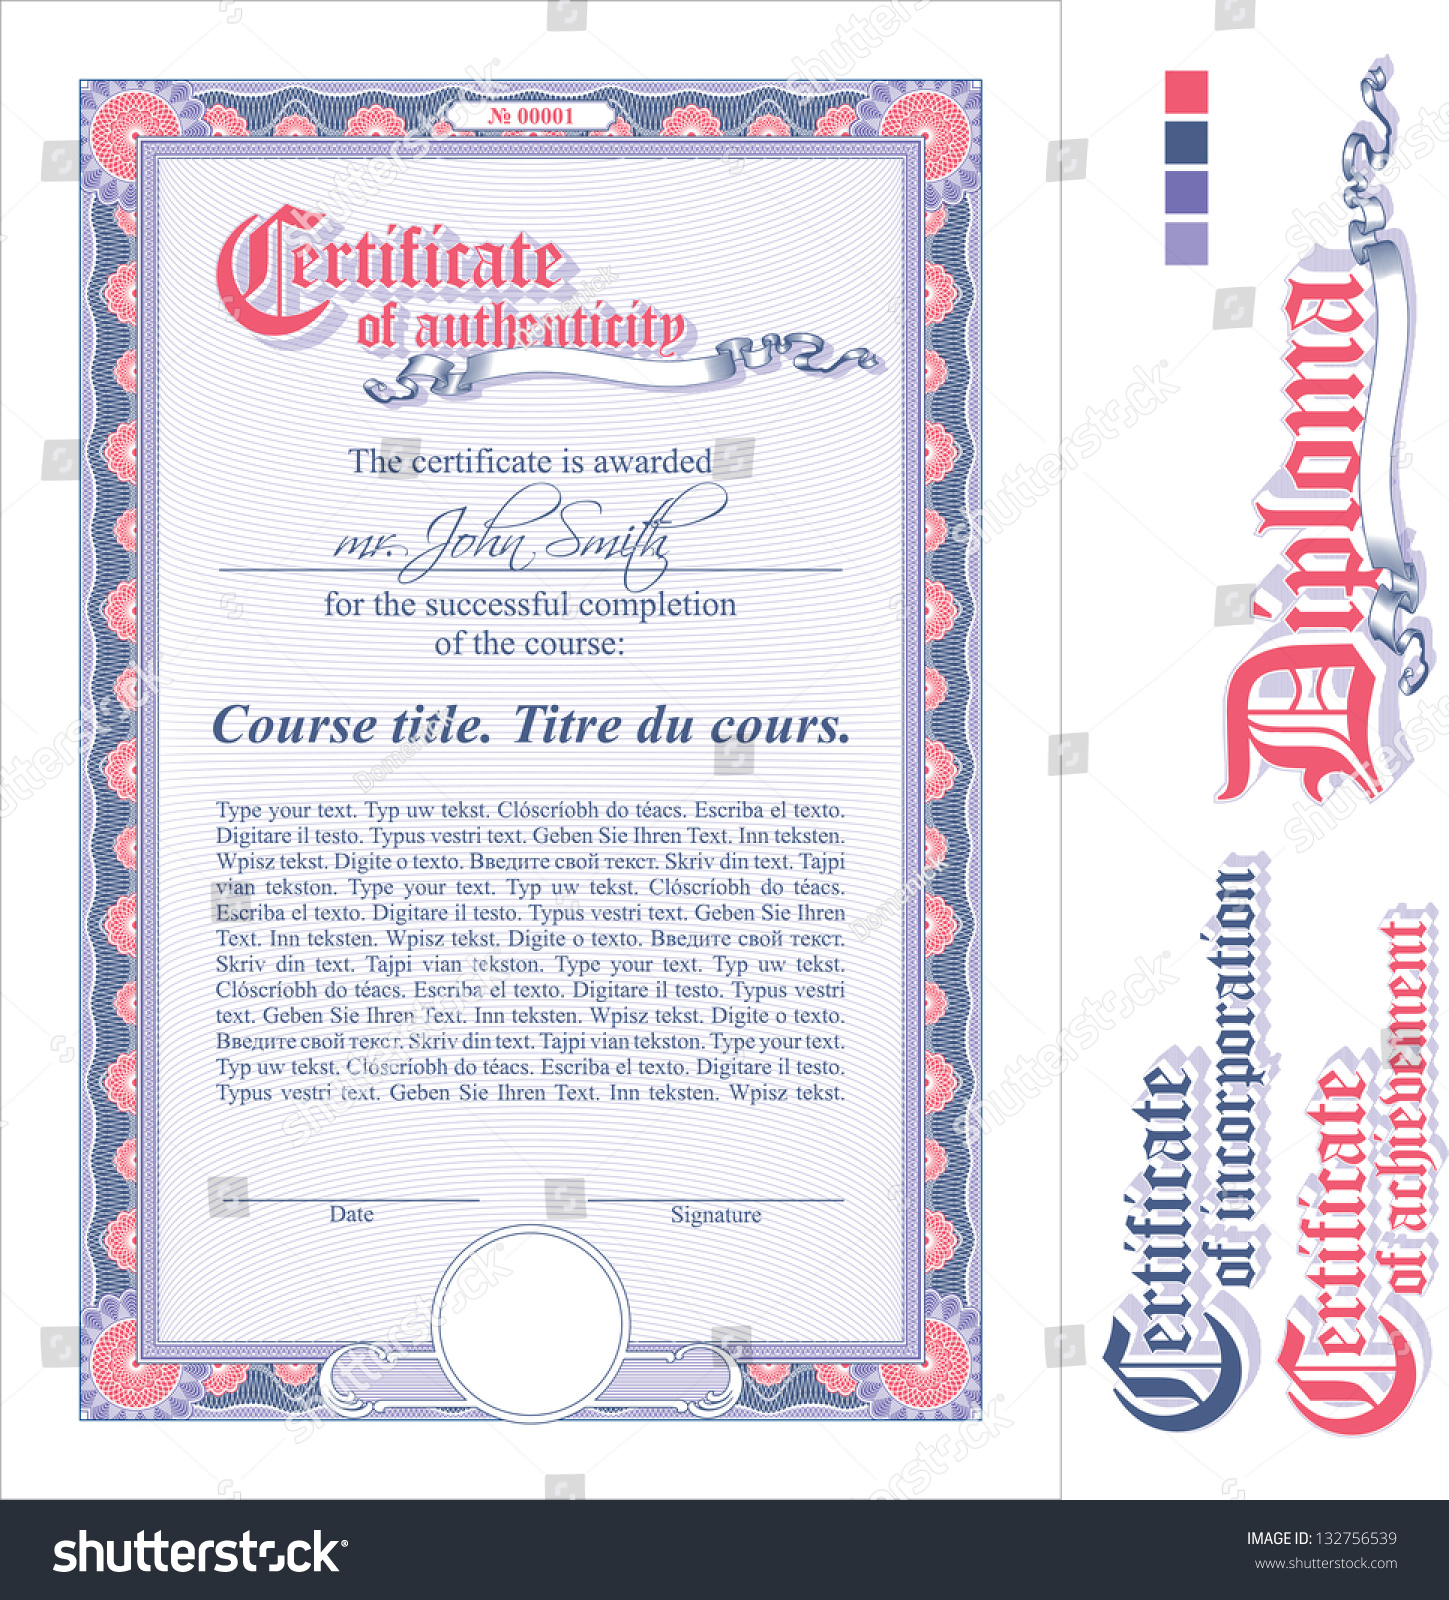 Blank certificate of authenticity template sample no objection blank certificate of authenticity template blank certificate of authenticity template yadclub Images